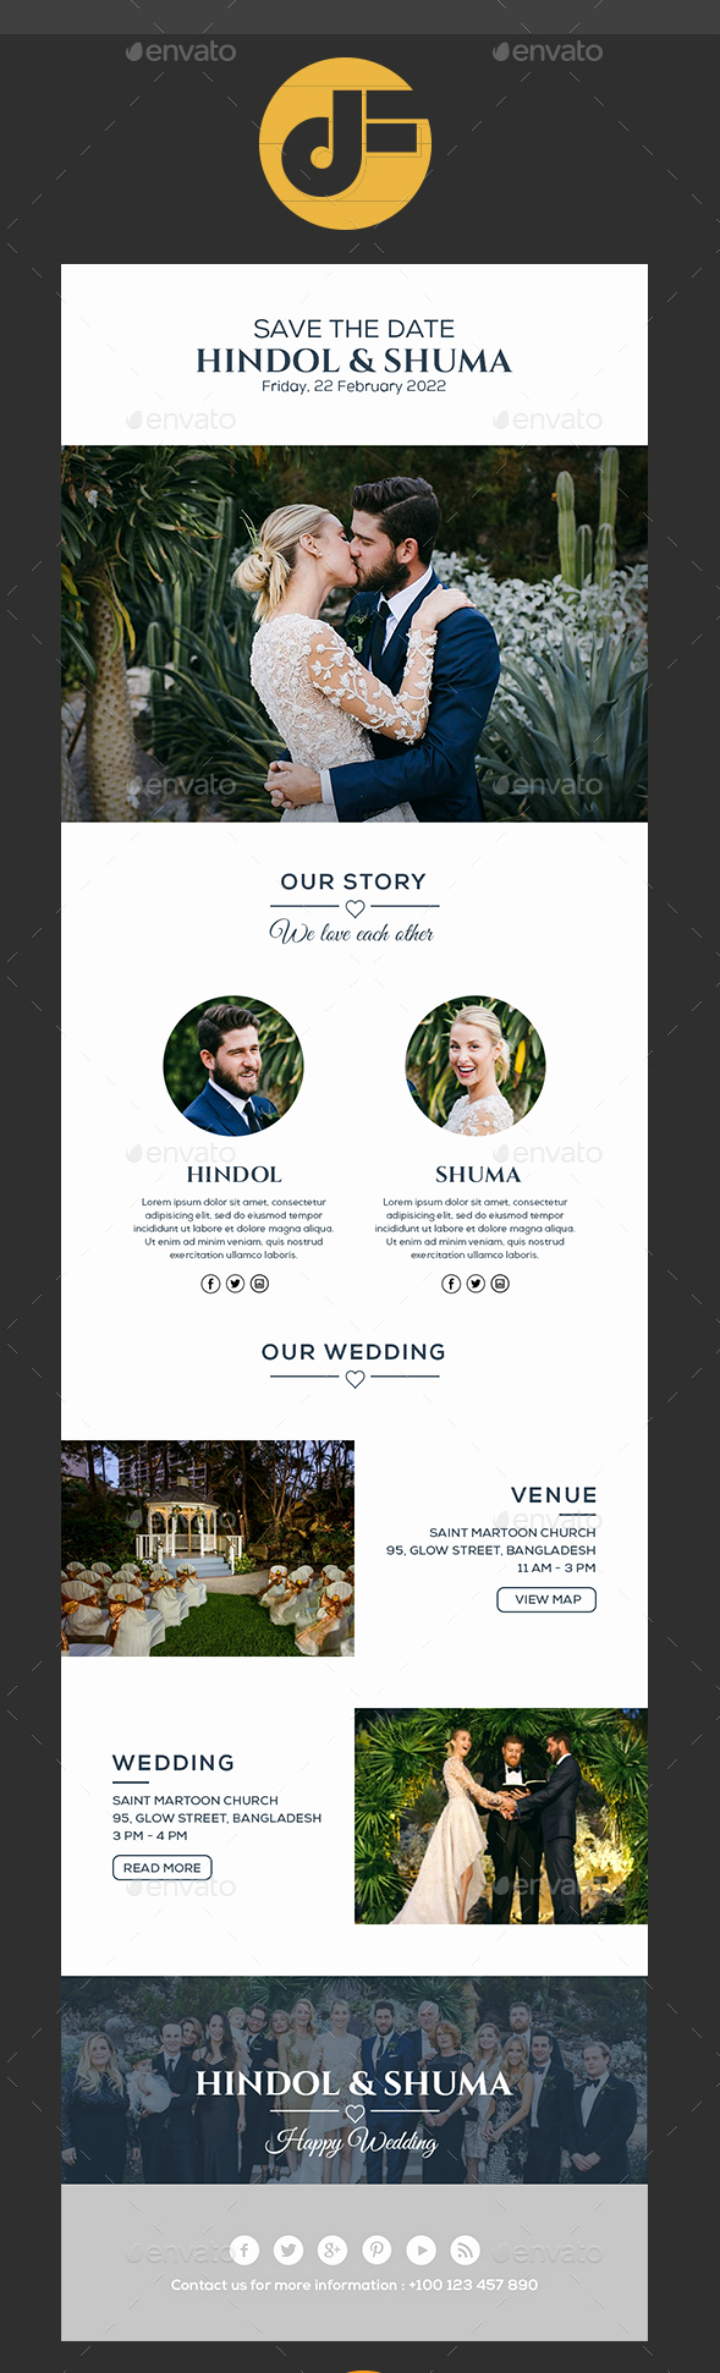 Wedding Invitation Email Template Elegant 14 Wedding Email Designs & Templates Psd Ai